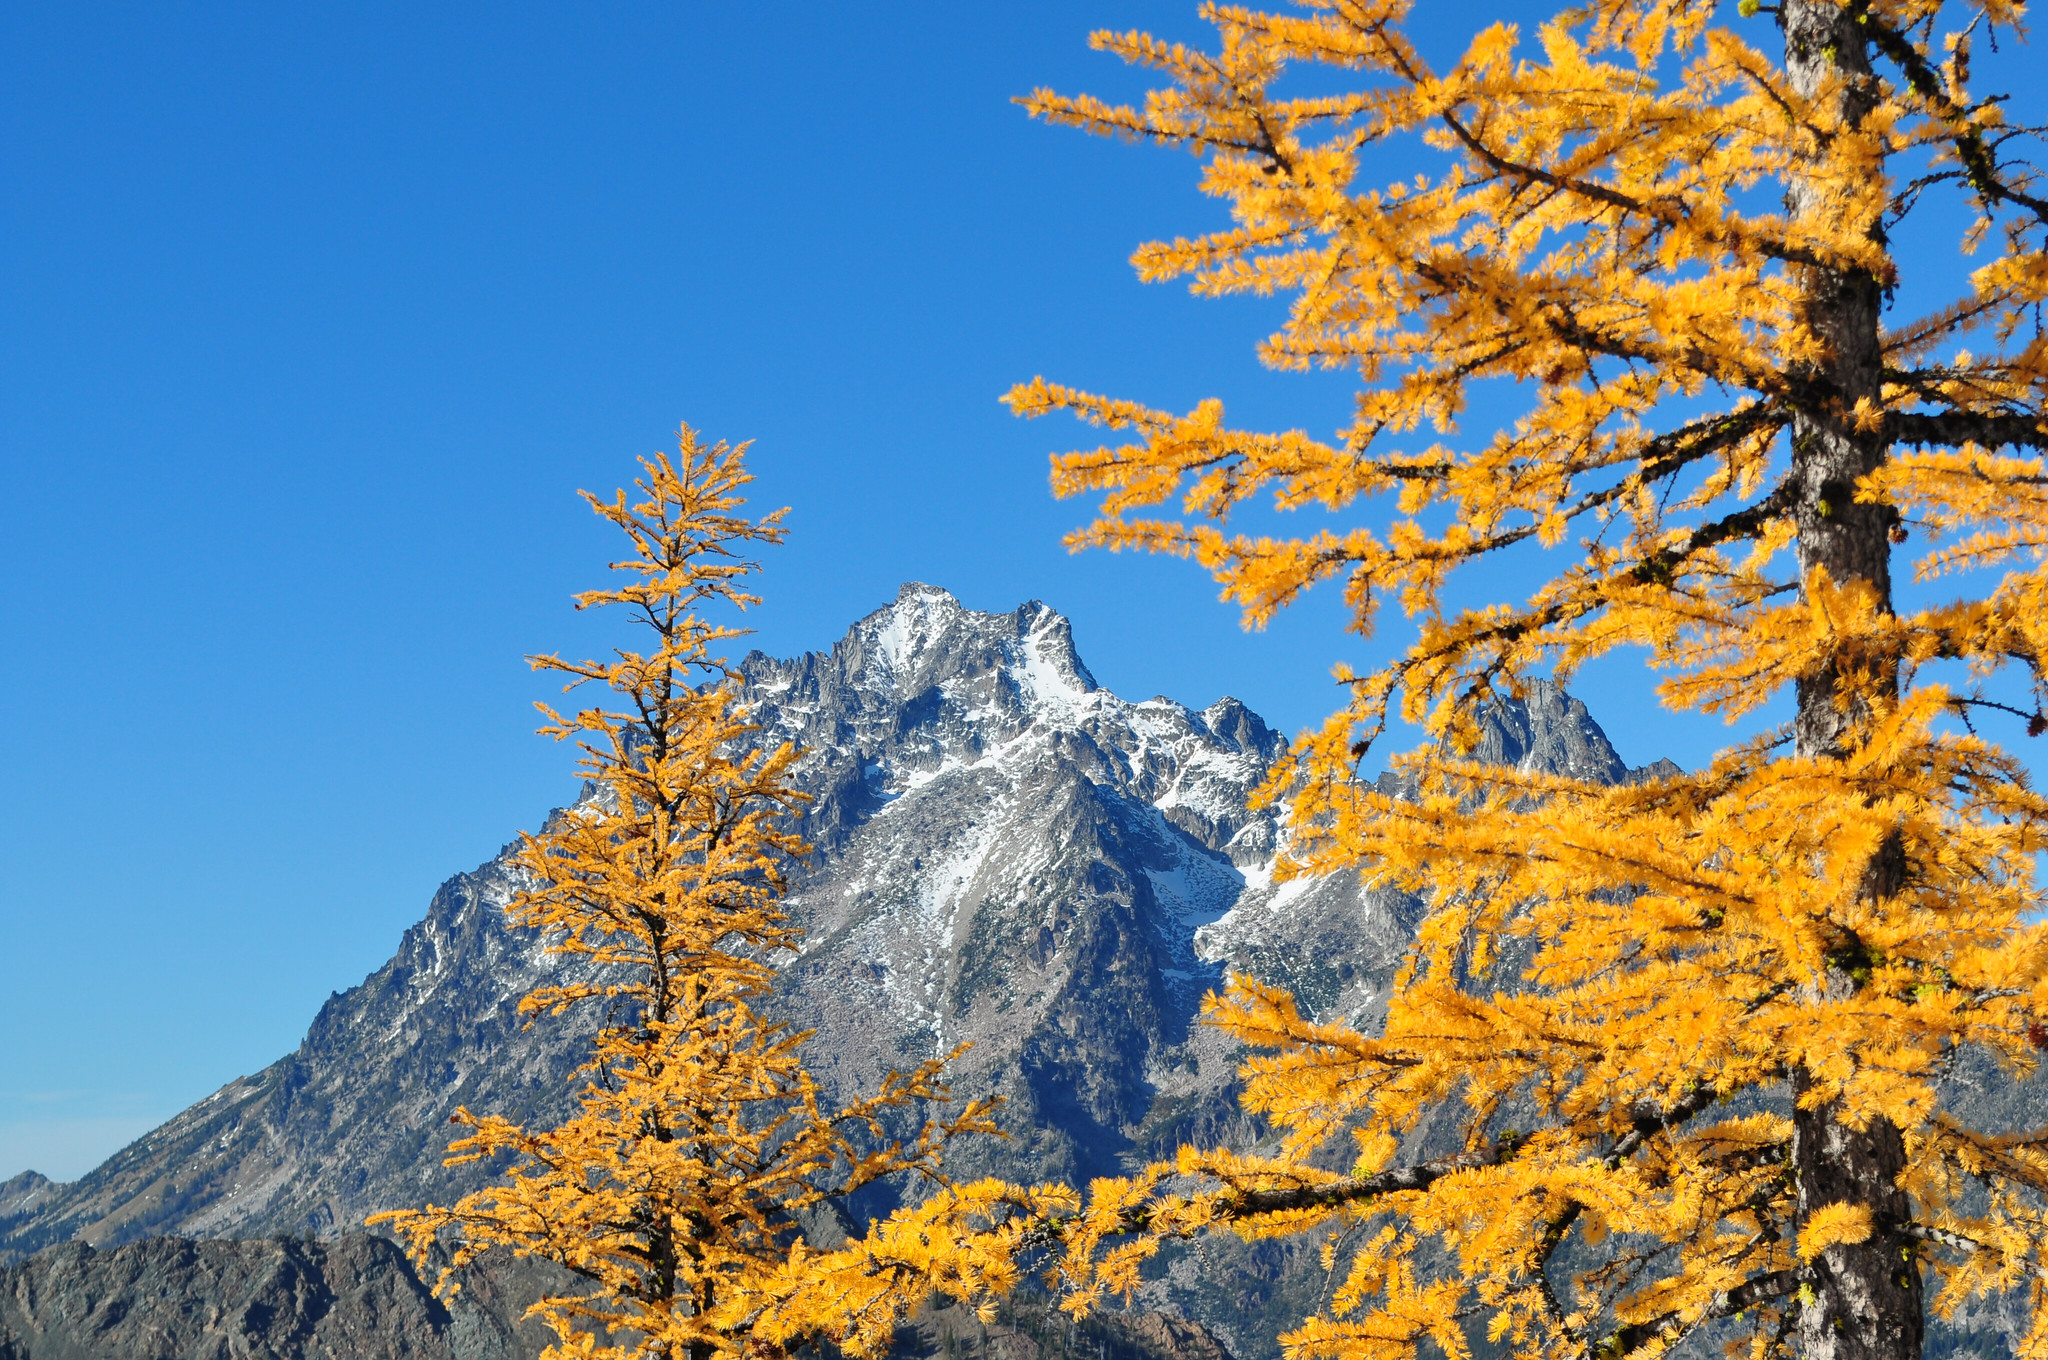 The fall color of a subalpine larch (Larix lyallii) set against Mt. Stewart on the Cle Elum Ranger District, Okanogan-Wenatchee National Forest.